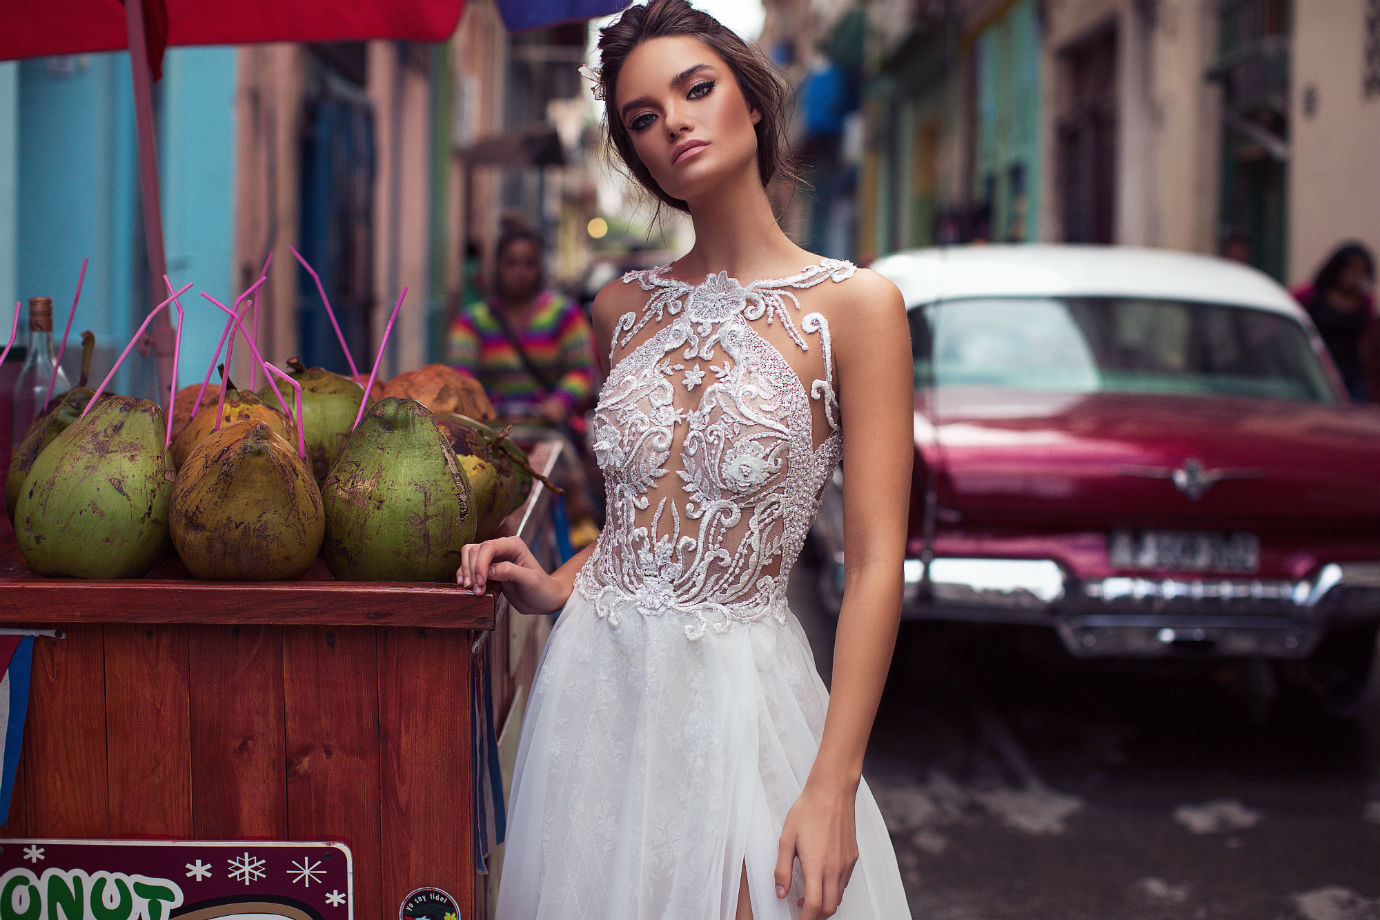 Blushing Bridal Boutique ,MillaNova,lorenzo rossi, Havana Campaign, Hilton, new collection 2018,bridal-wedding-wedding gown-Mississauga-woodbridge-vaughan-toronto-gta-ontario-canada-montreal-buffalo-NYC-california